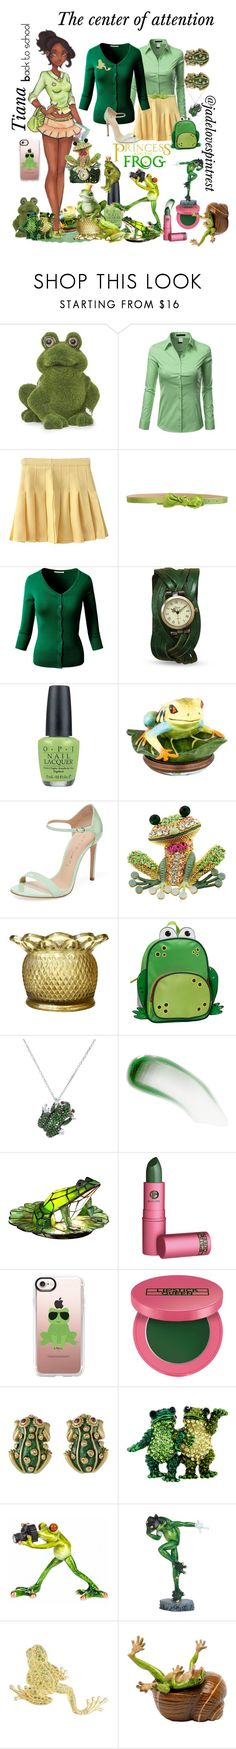 """Tiana style: First day of school"" by jadelovespintrest ❤ liked on Polyvore featuring Doublju, RED Valentino, OPI, Halcyon Days, Casadei, Rockland Luggage, Roberto Coin, Lipstick Queen, Dale Tiffany and Casetify"